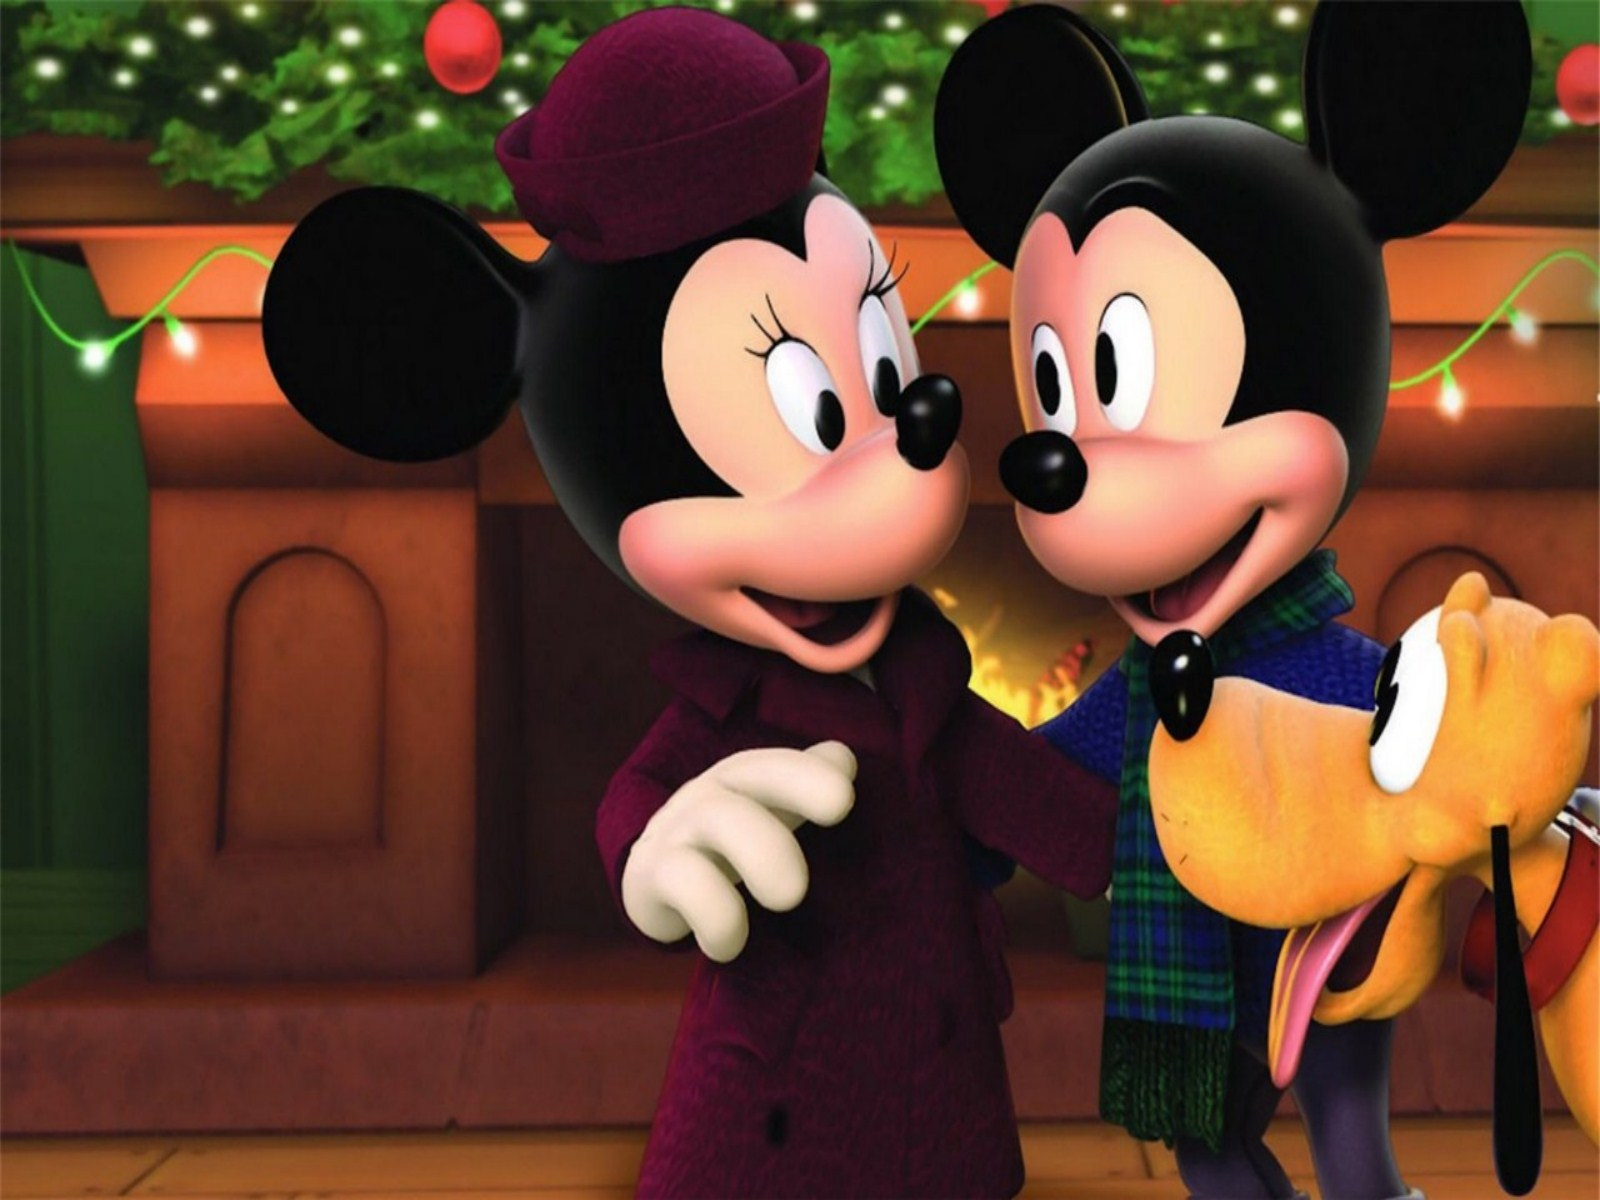 Download Hd Mickey Christmas Wallpaper Iphone Wallpapers And 1600x1200